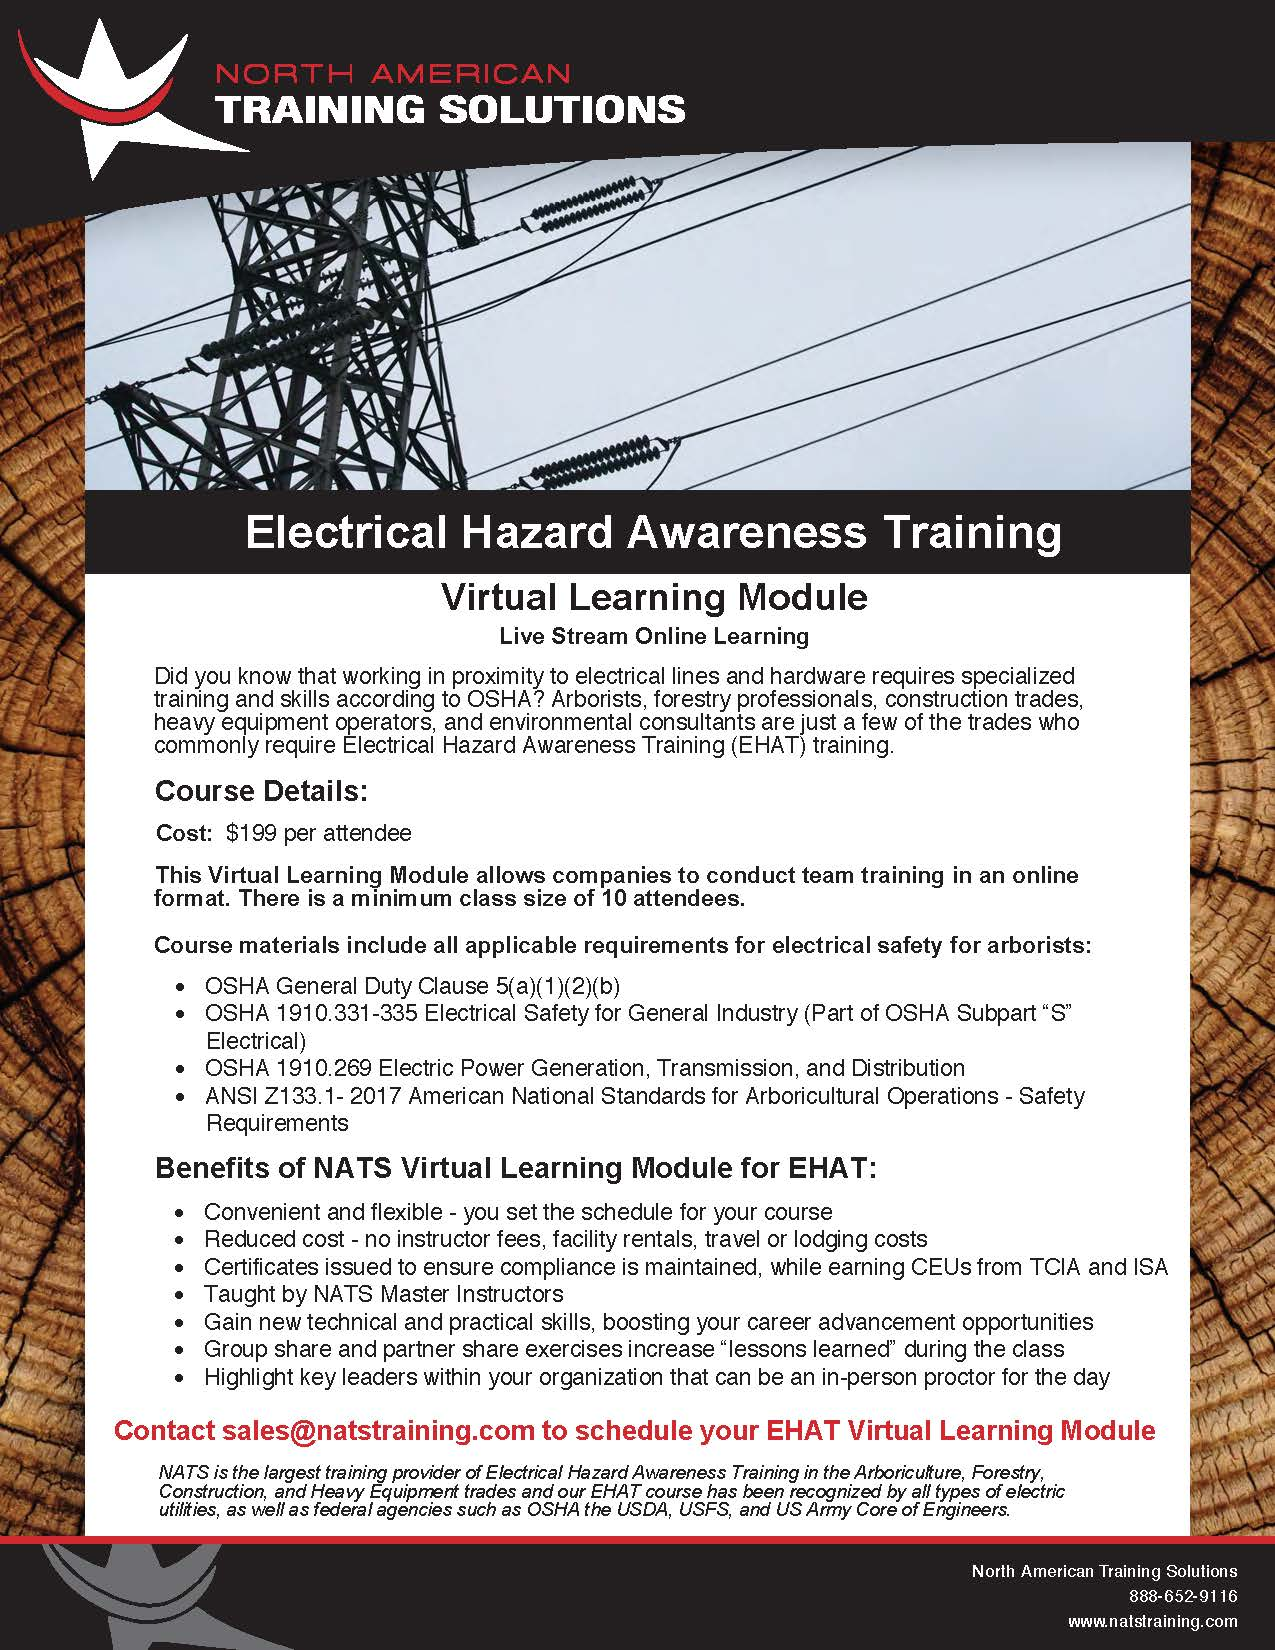 EHAT Virtual Learning